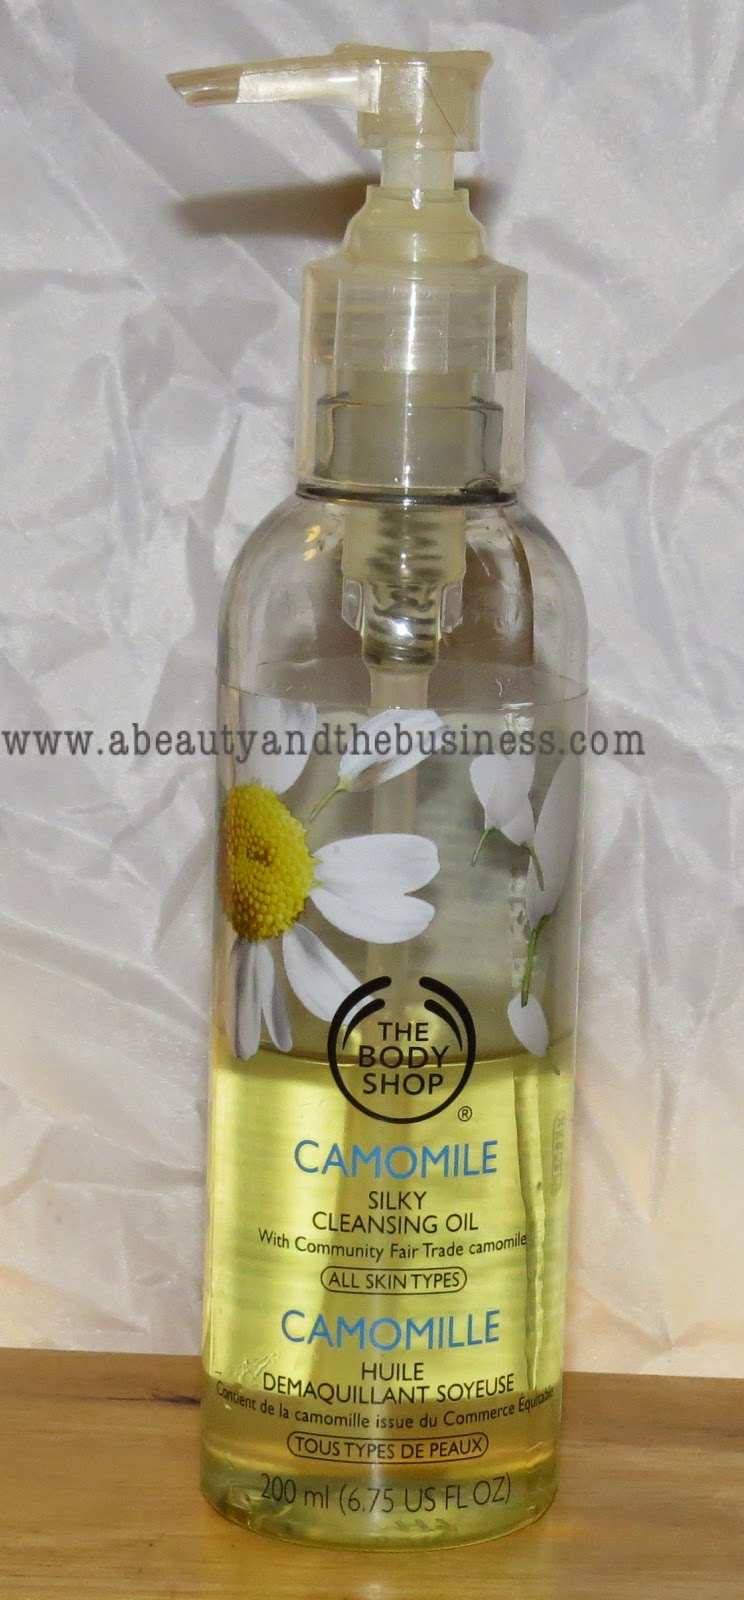 The Body shop cleansing oil, the body shop, cleansing oil, best cleansing oil, The Body shop Camomile silky Cleansing Oil review, camomile cleansing oil, makeup remover, makeup remover cleansing oil, cleansing oil for acne prone skin,